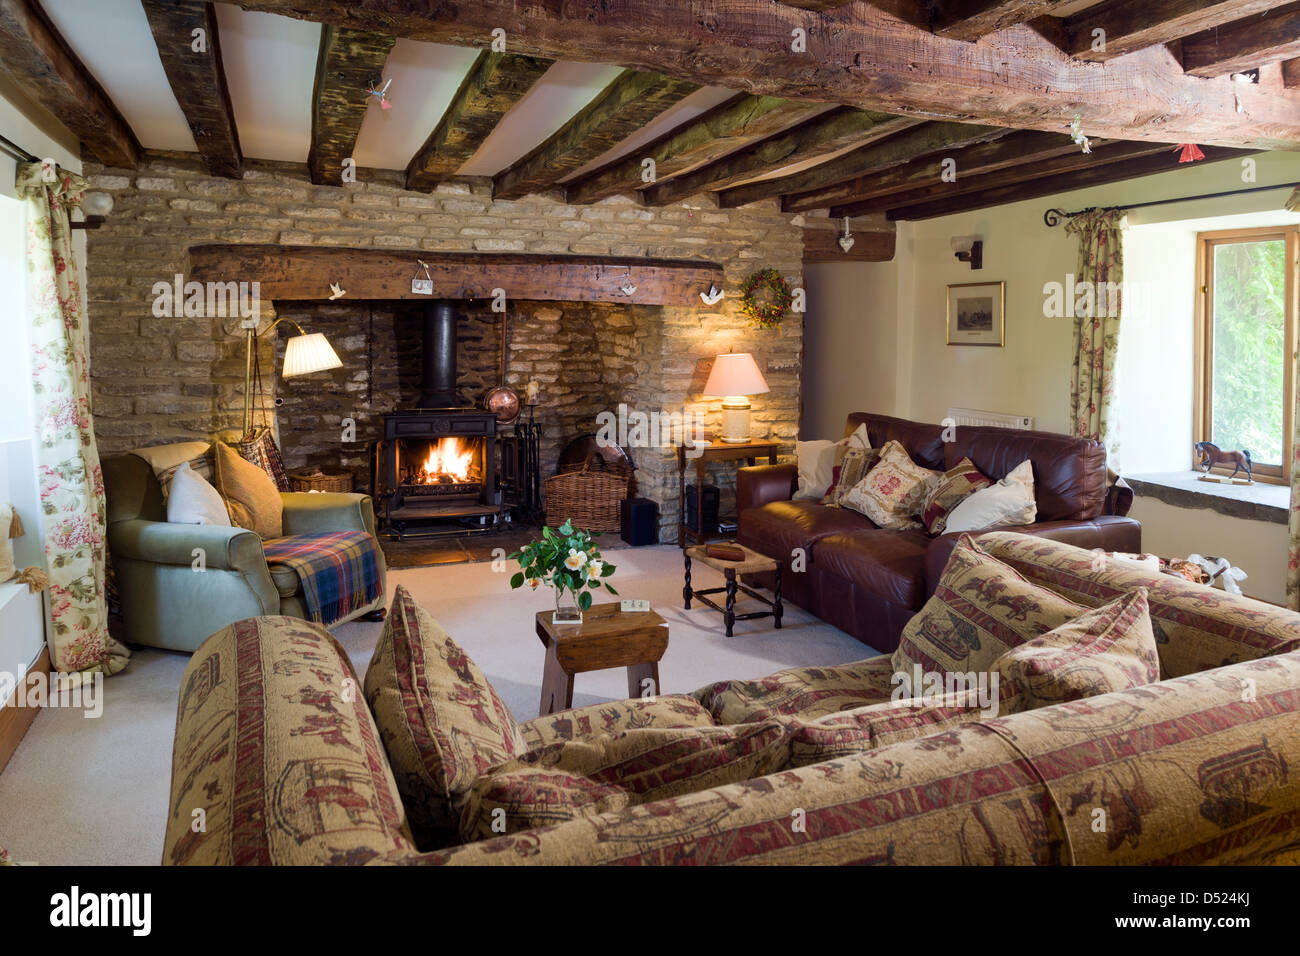 A Cosy Cottage Living Room With A Log Burning Stove Exposed Stone Walls And  Ceiling Beams Features